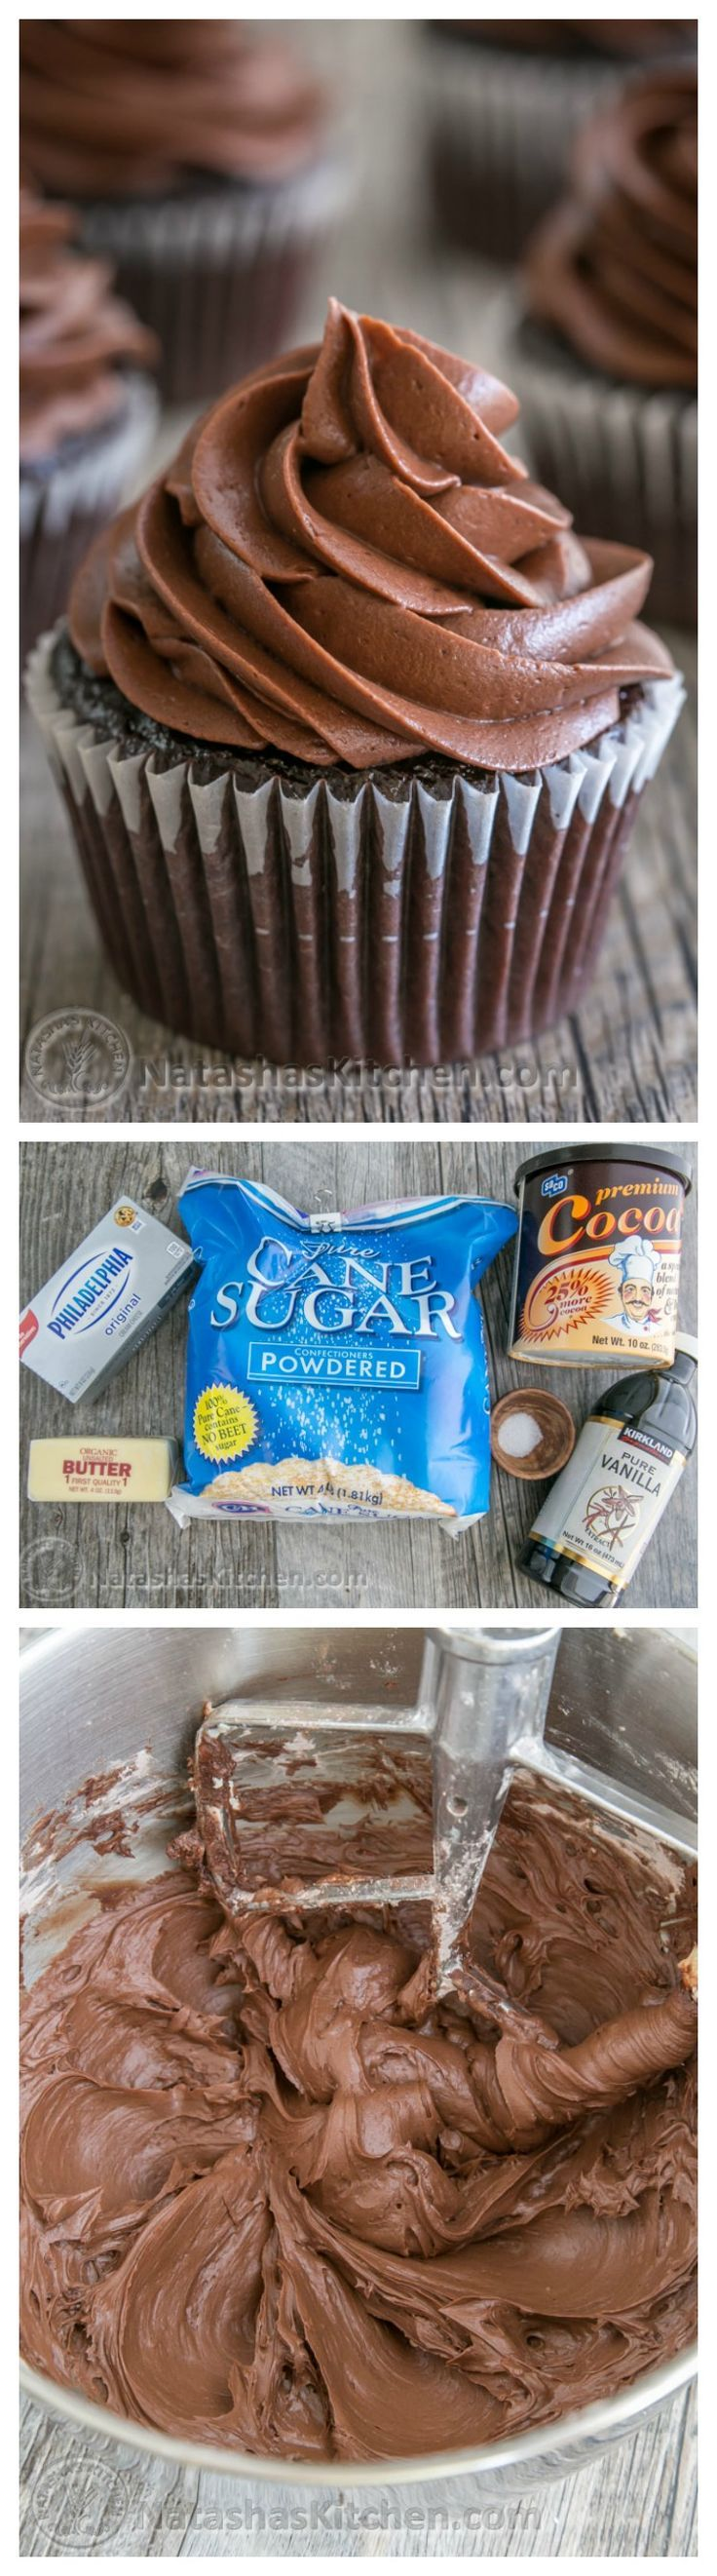 This whipped chocolate cream cheese frosting is easy to make, silky smooth and pipes beautifully. @natashaskitchen